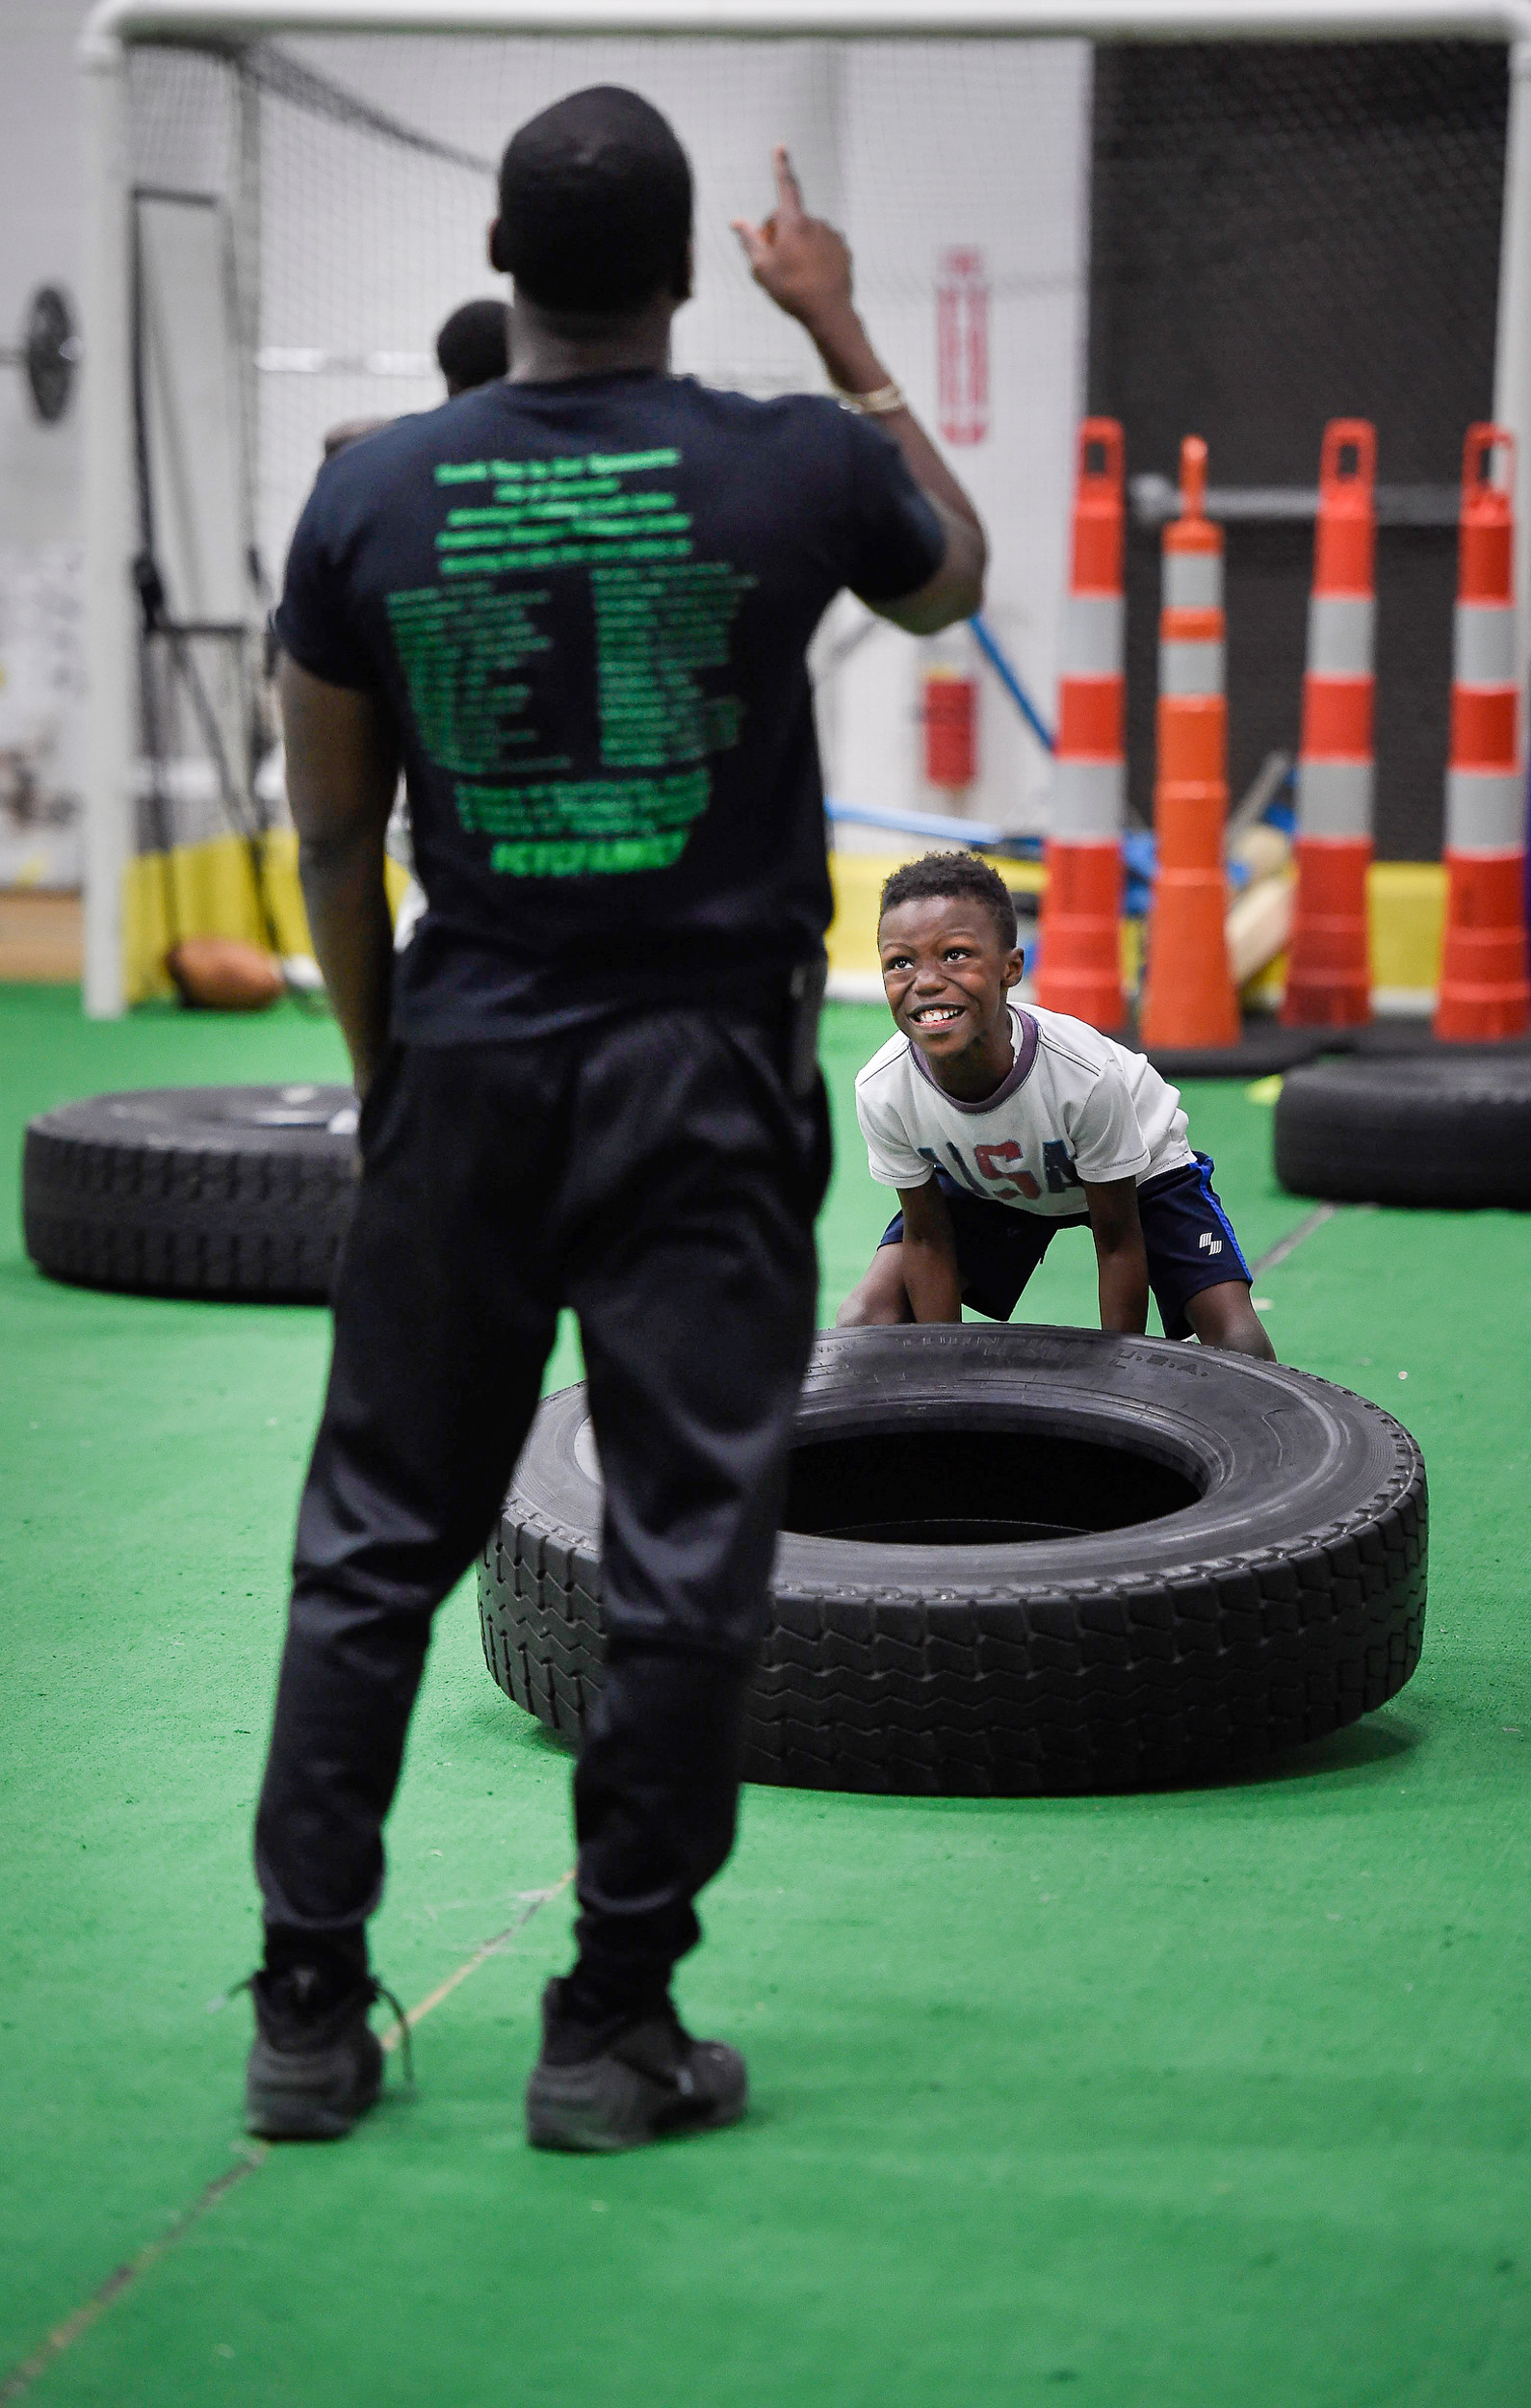 Hopkins points his finger upwards to correct an athlete's posture while he lifts a tire at Lincoln Sports Park, Dec. 7, 2017.